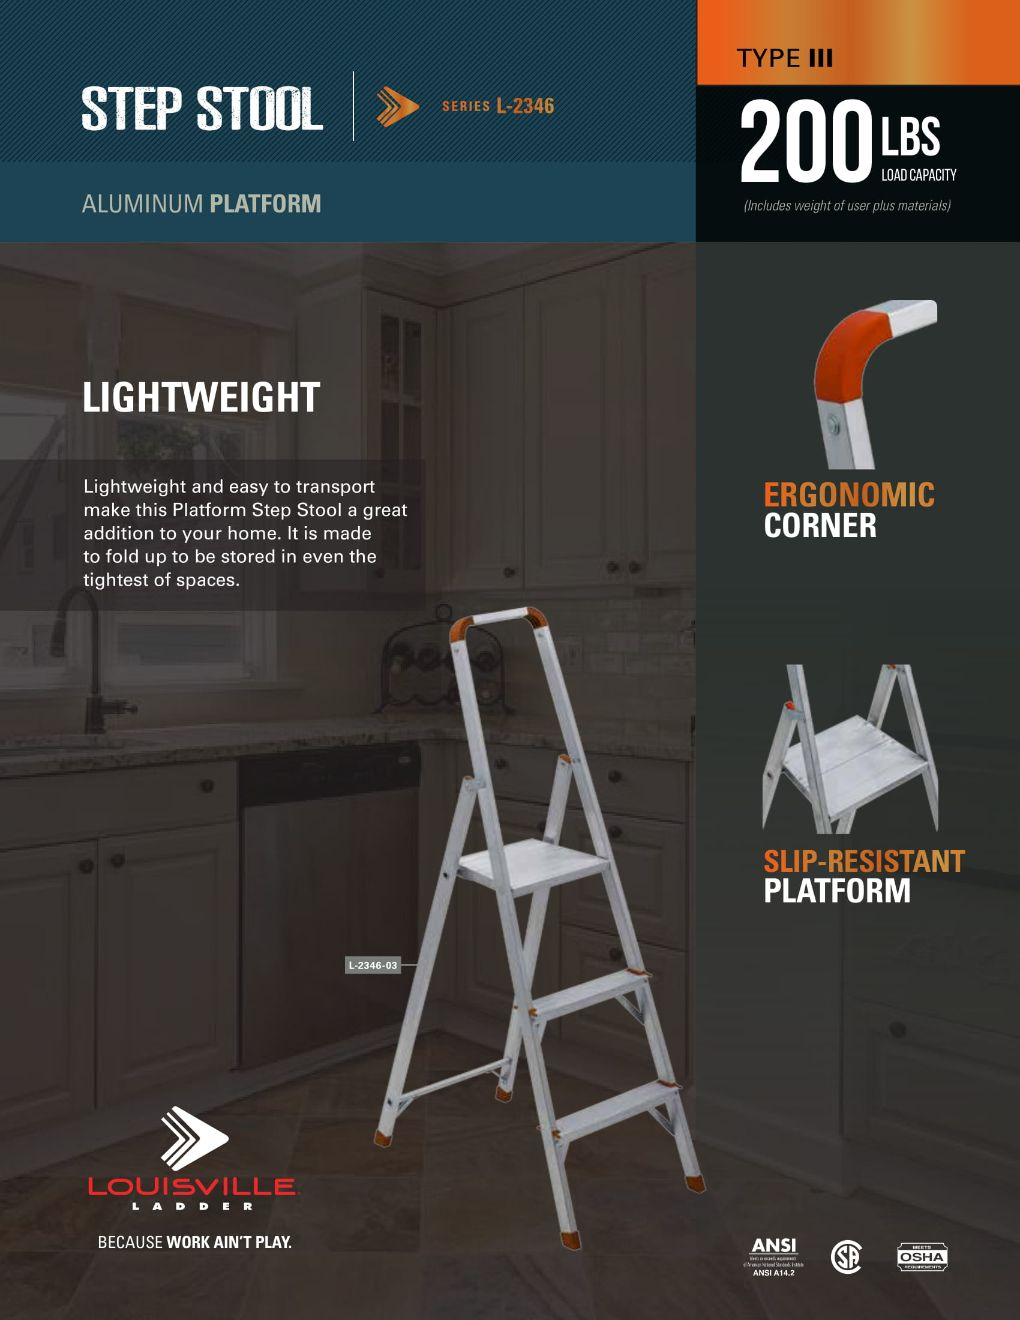 L-2346 Step Stool Ladder Flyer and Spec Sheet Marketing Material Image